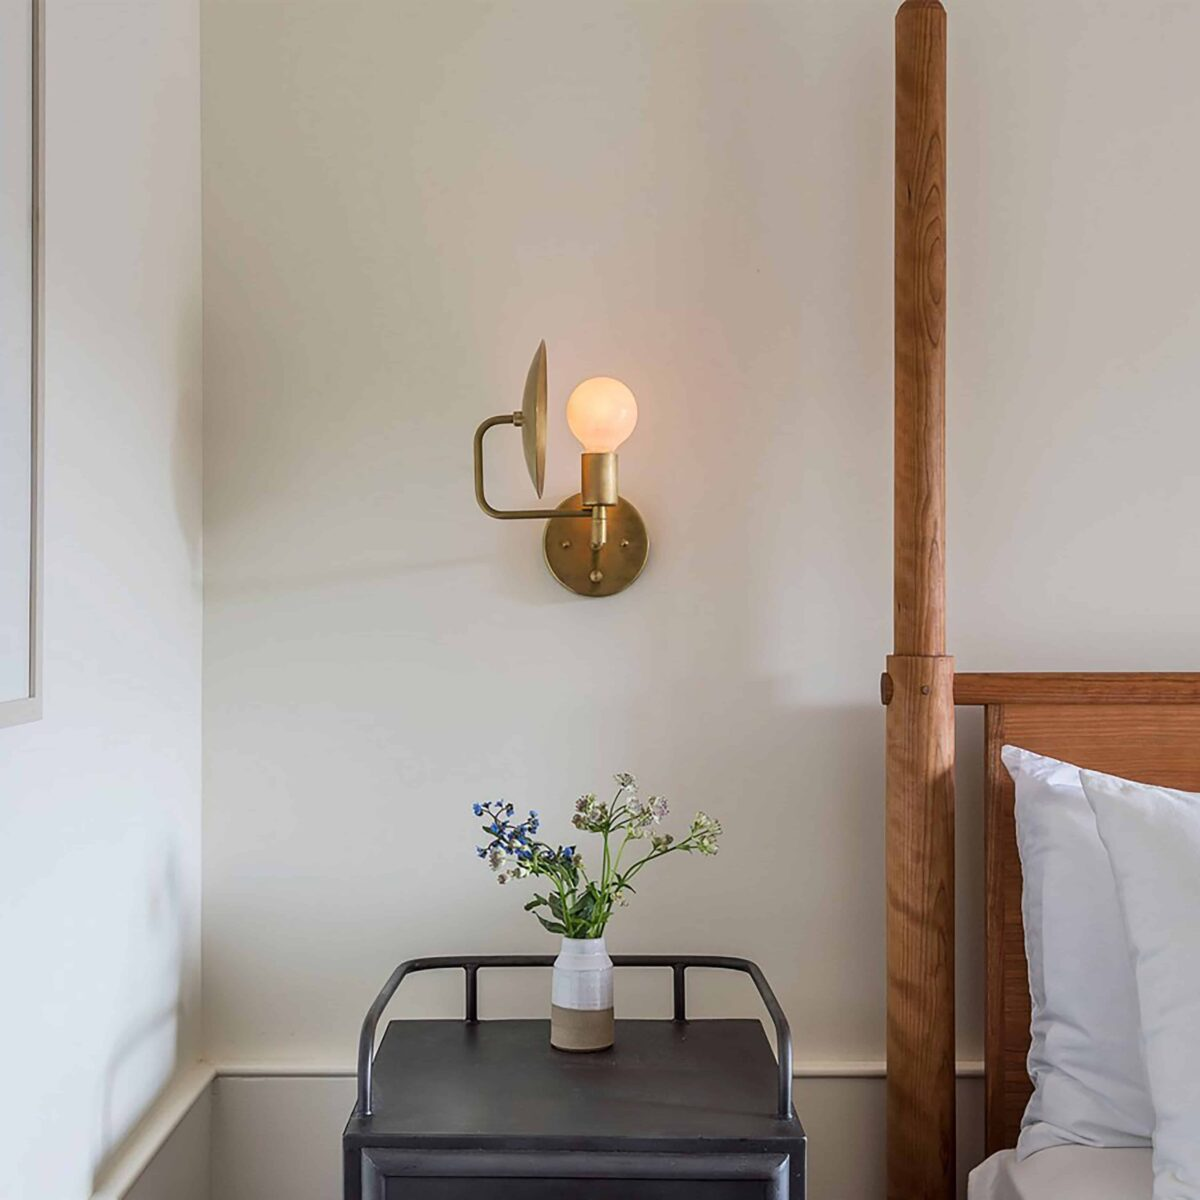 Orbit Sconce in Situ